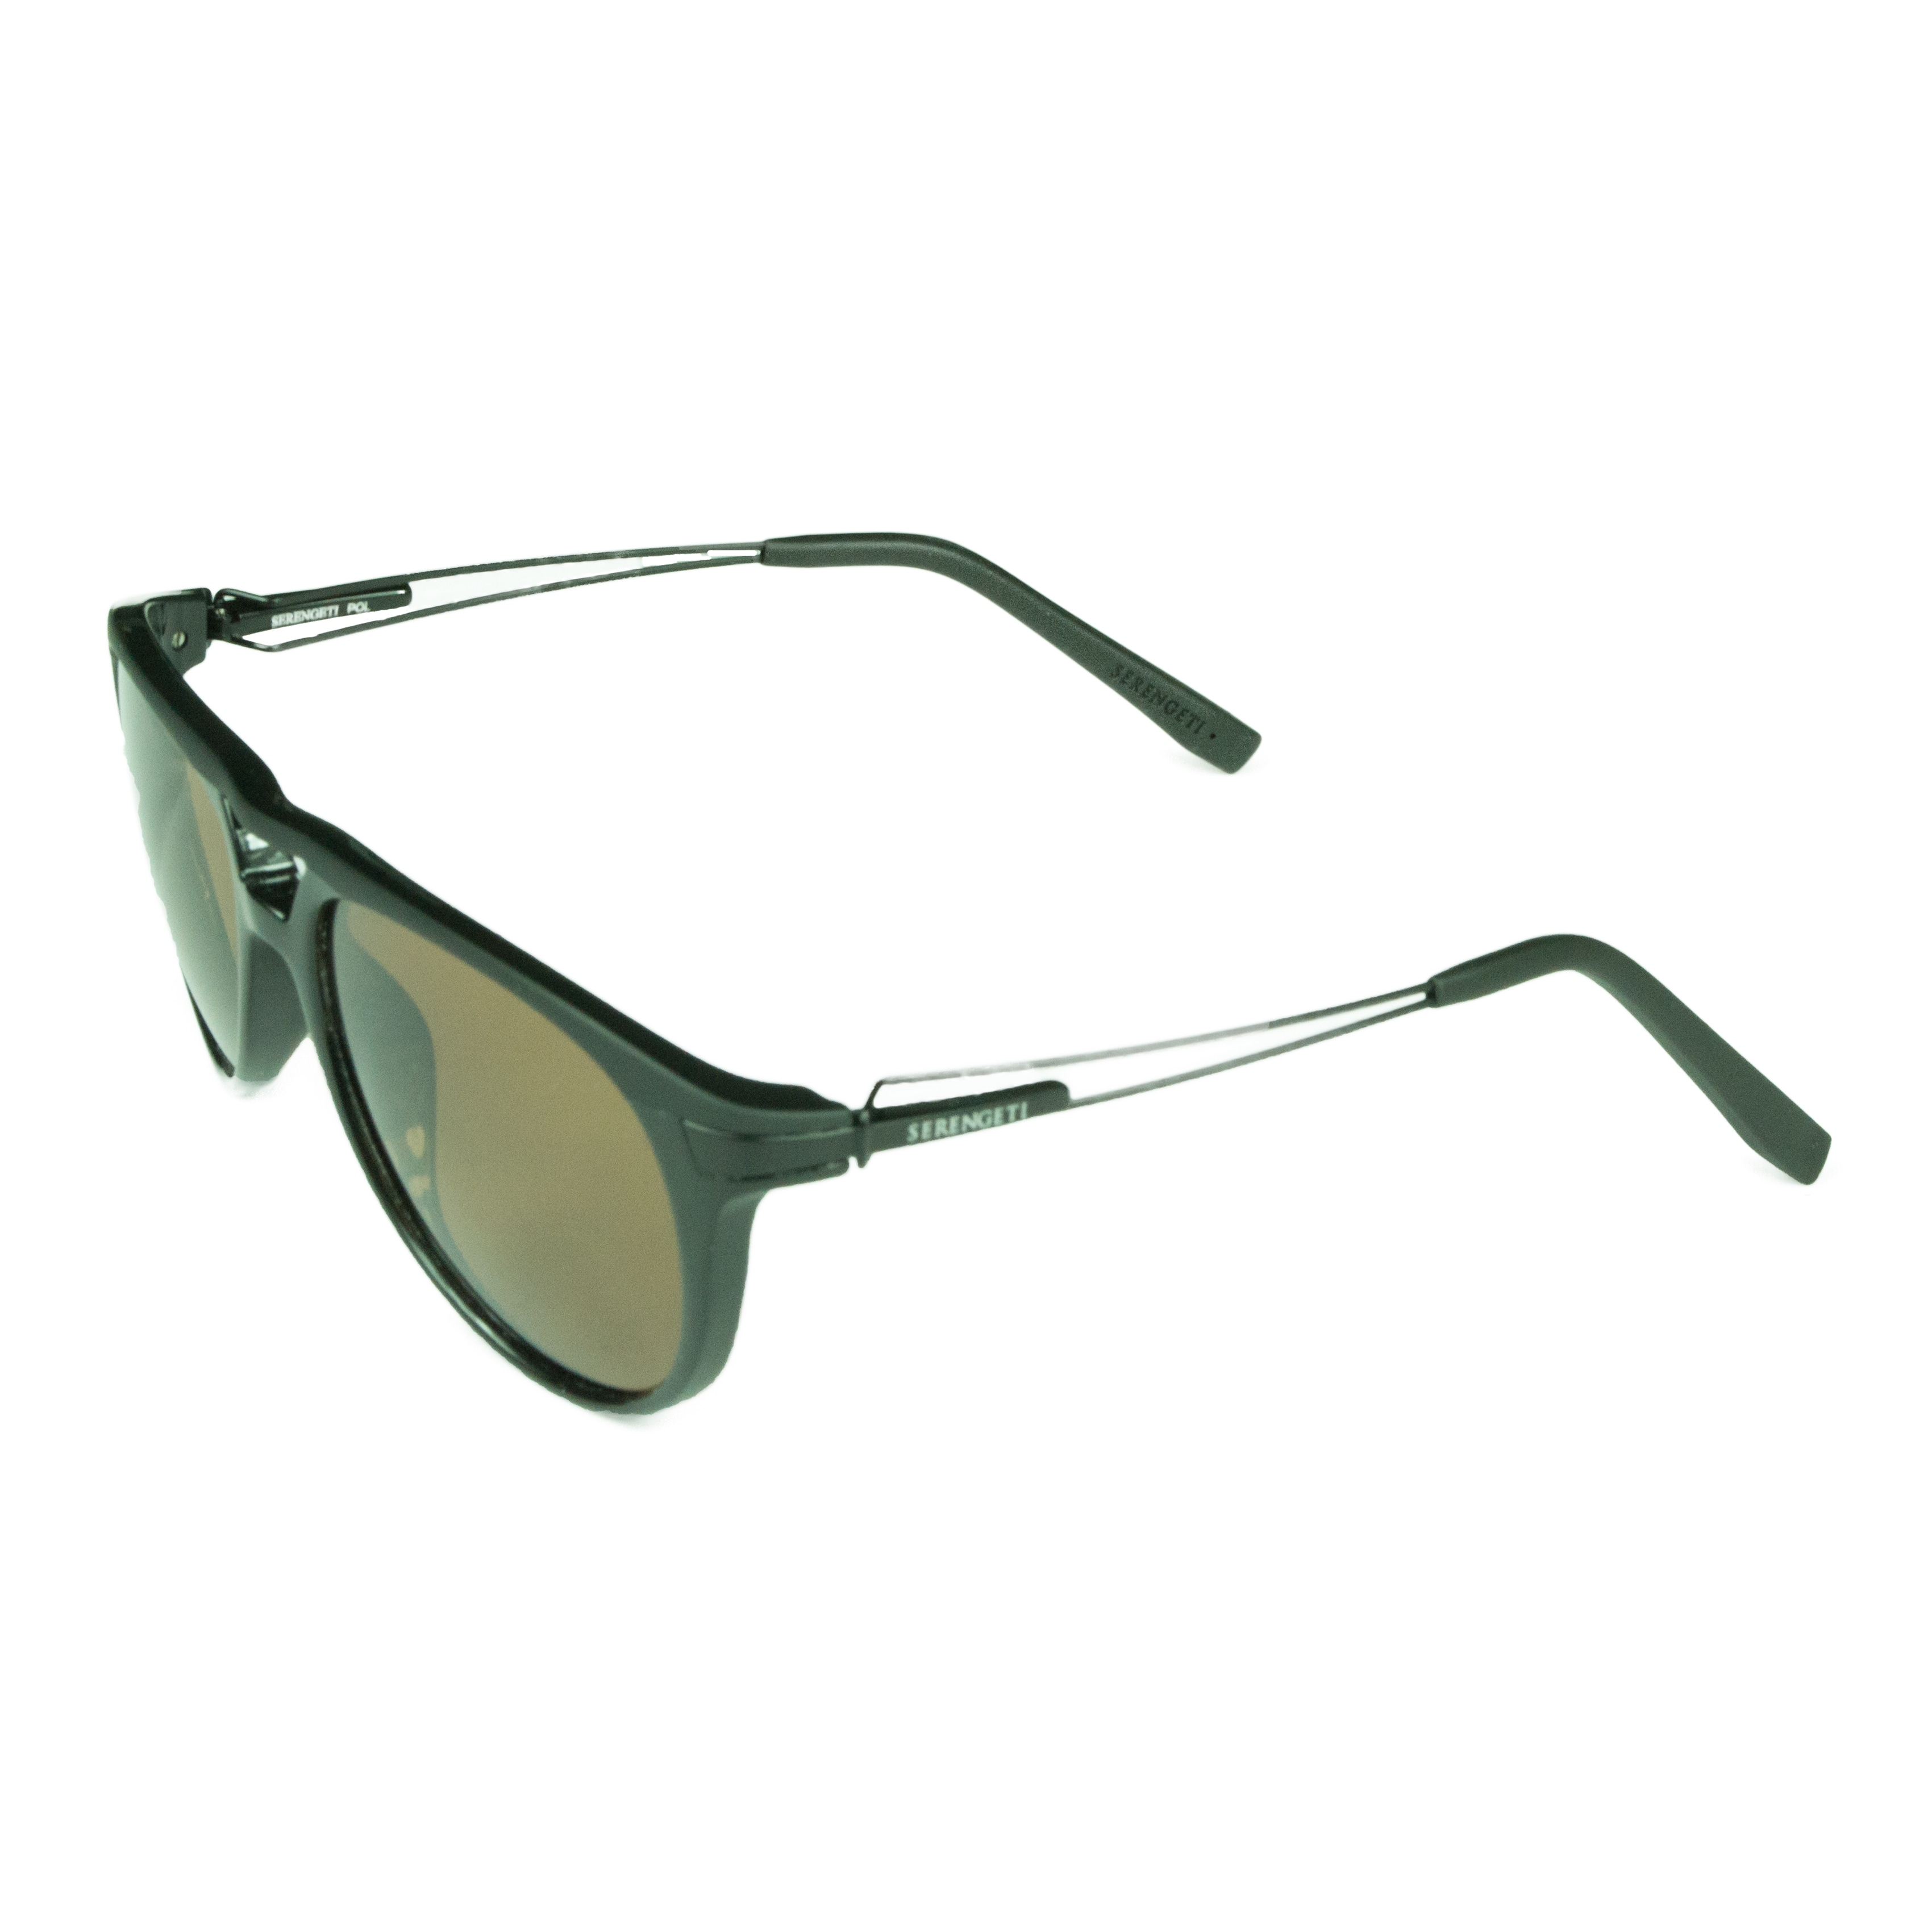 85df012519f8 Shop Serengeti Udine Sunglasses - Free Shipping Today - Overstock - 13232213